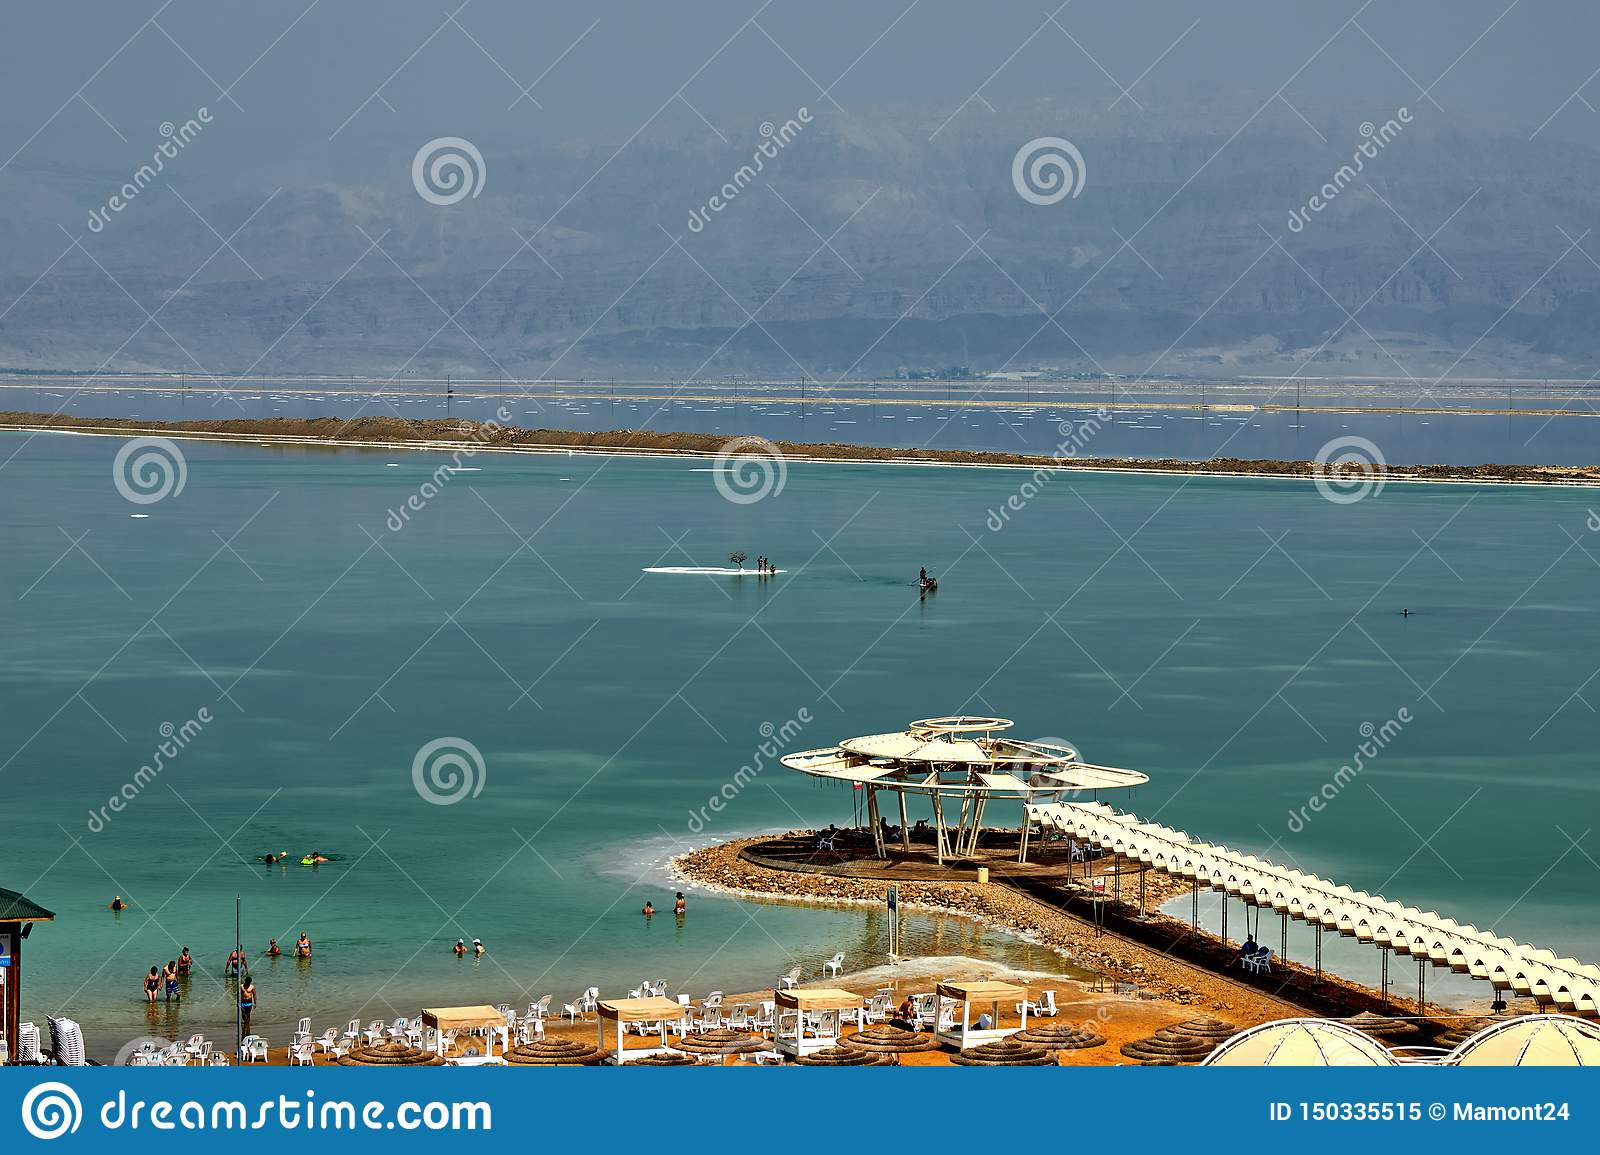 Dead Sea, is a salt lake bordering Jordan to the north, and Israel to the west